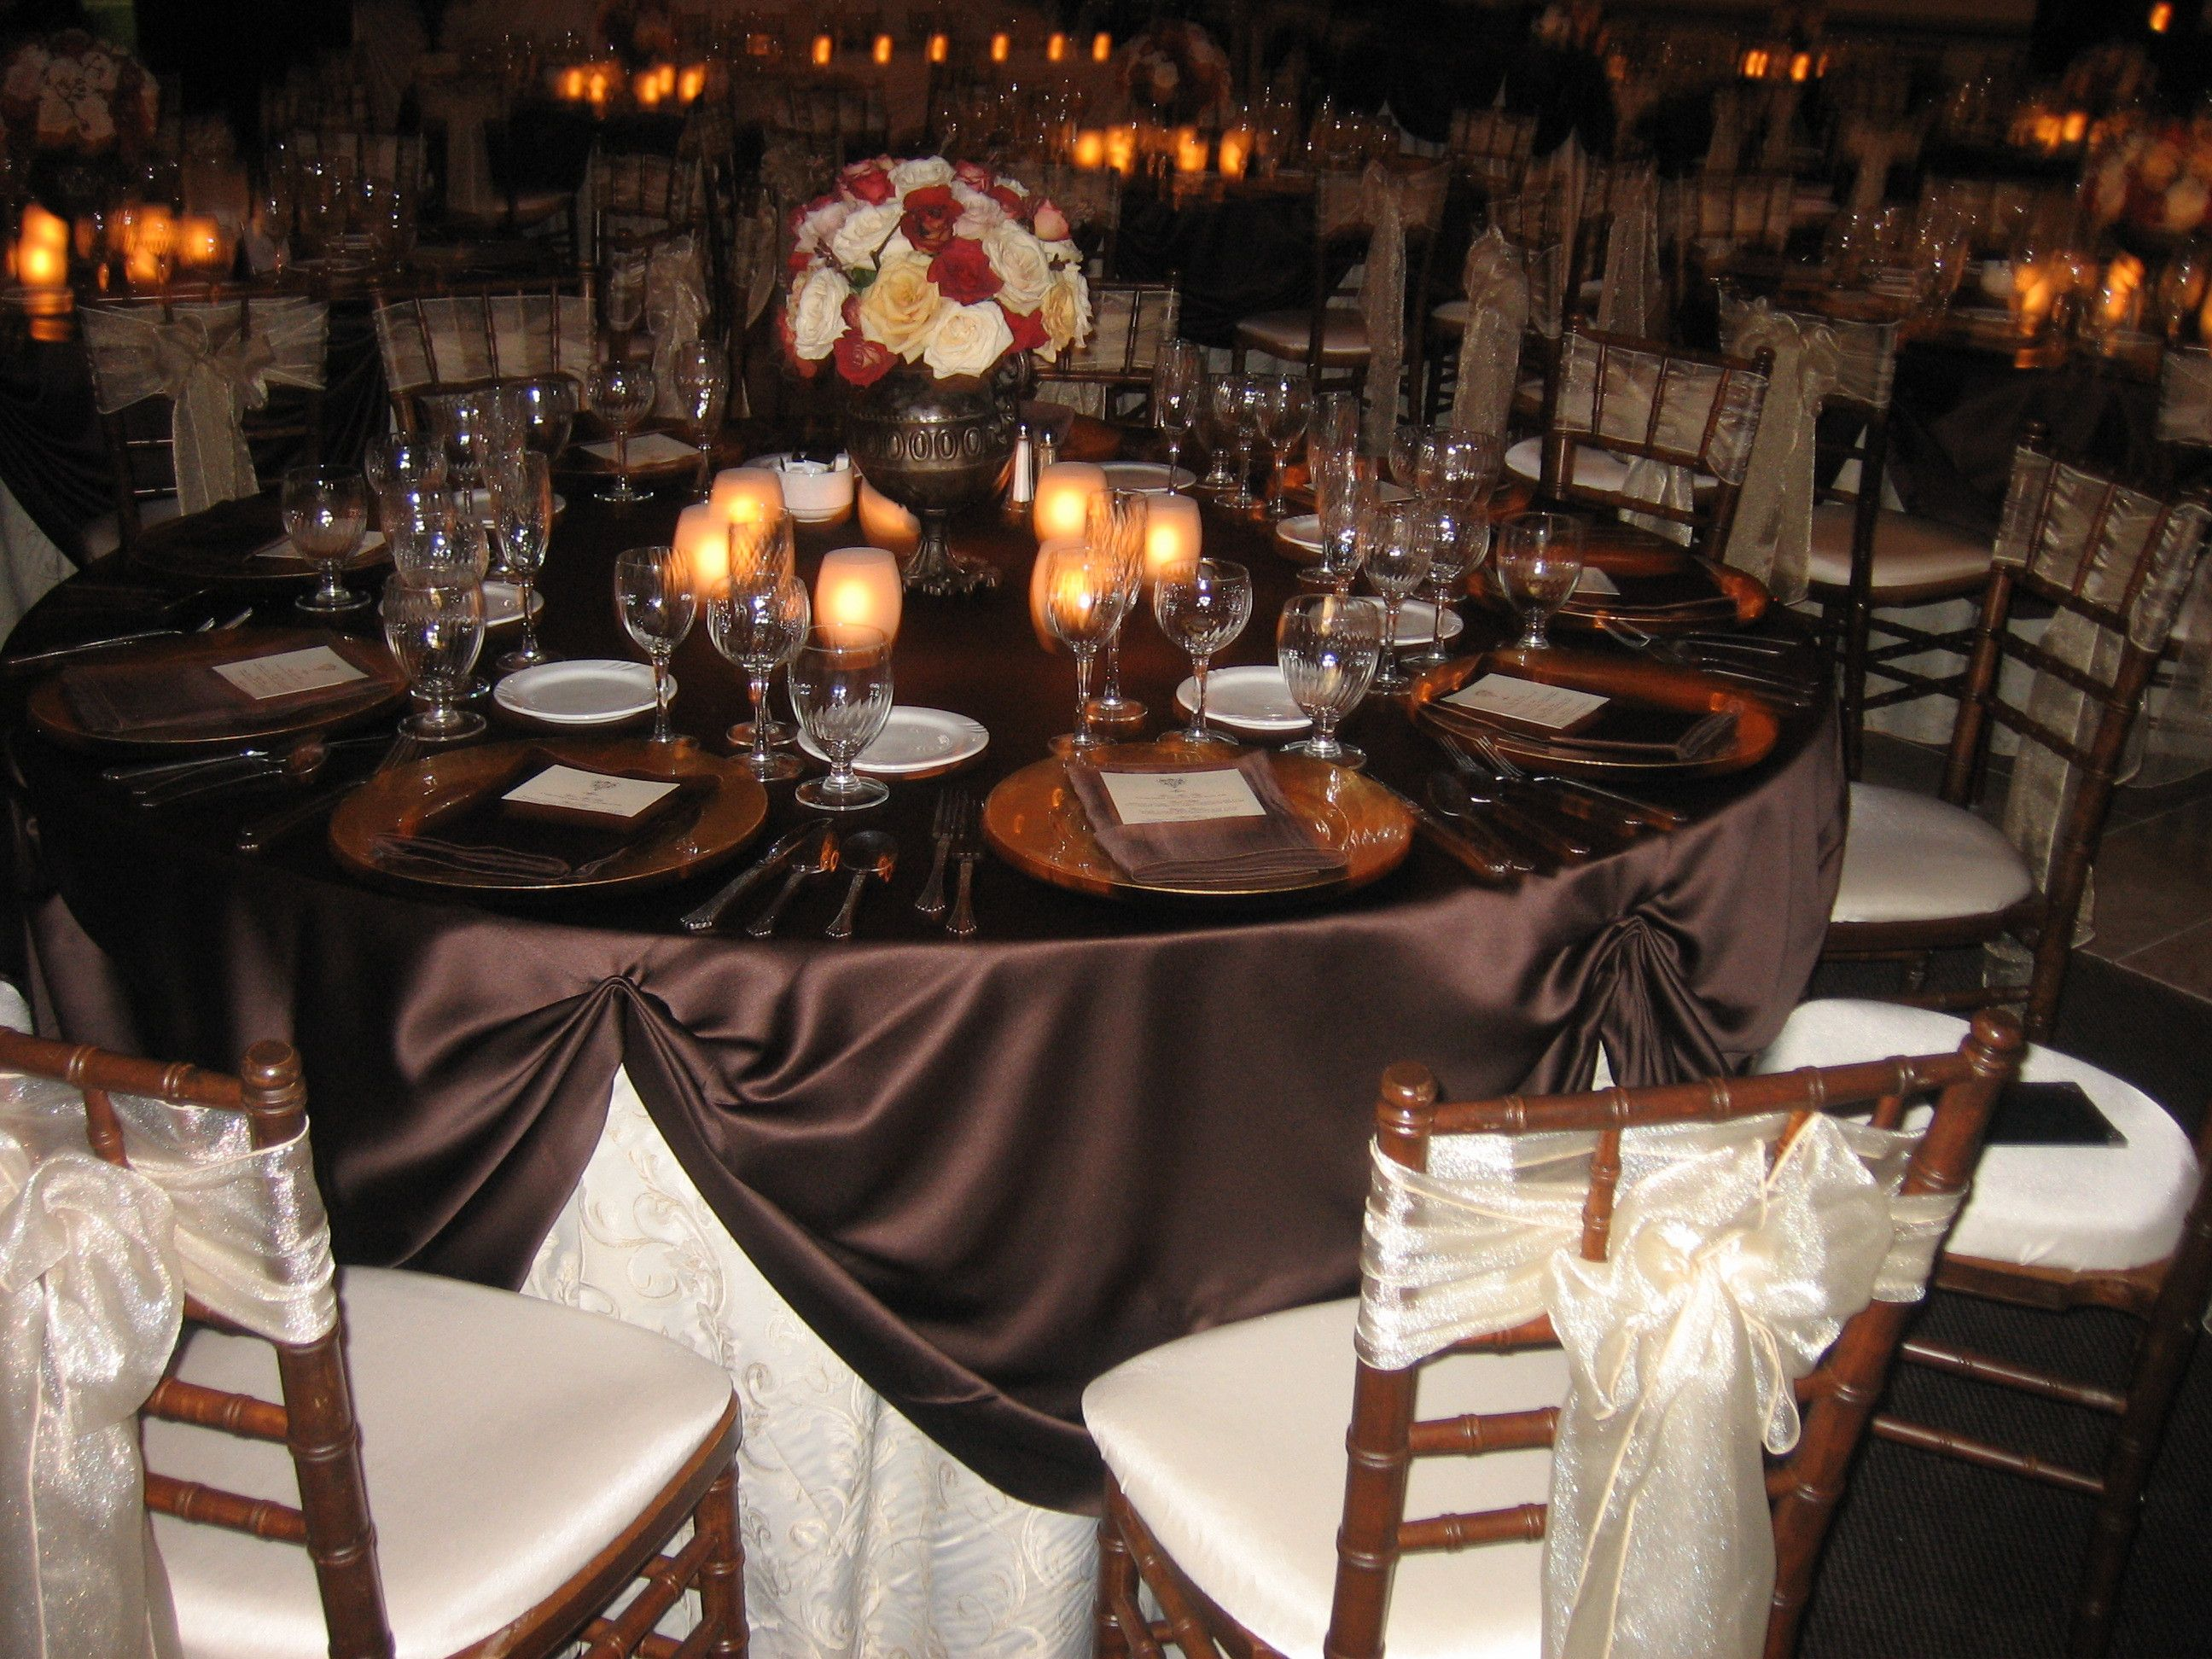 Wedding Chair Covers Montreal Desk Best Reception Flowers And Decor Registry Ivory Orange Pink